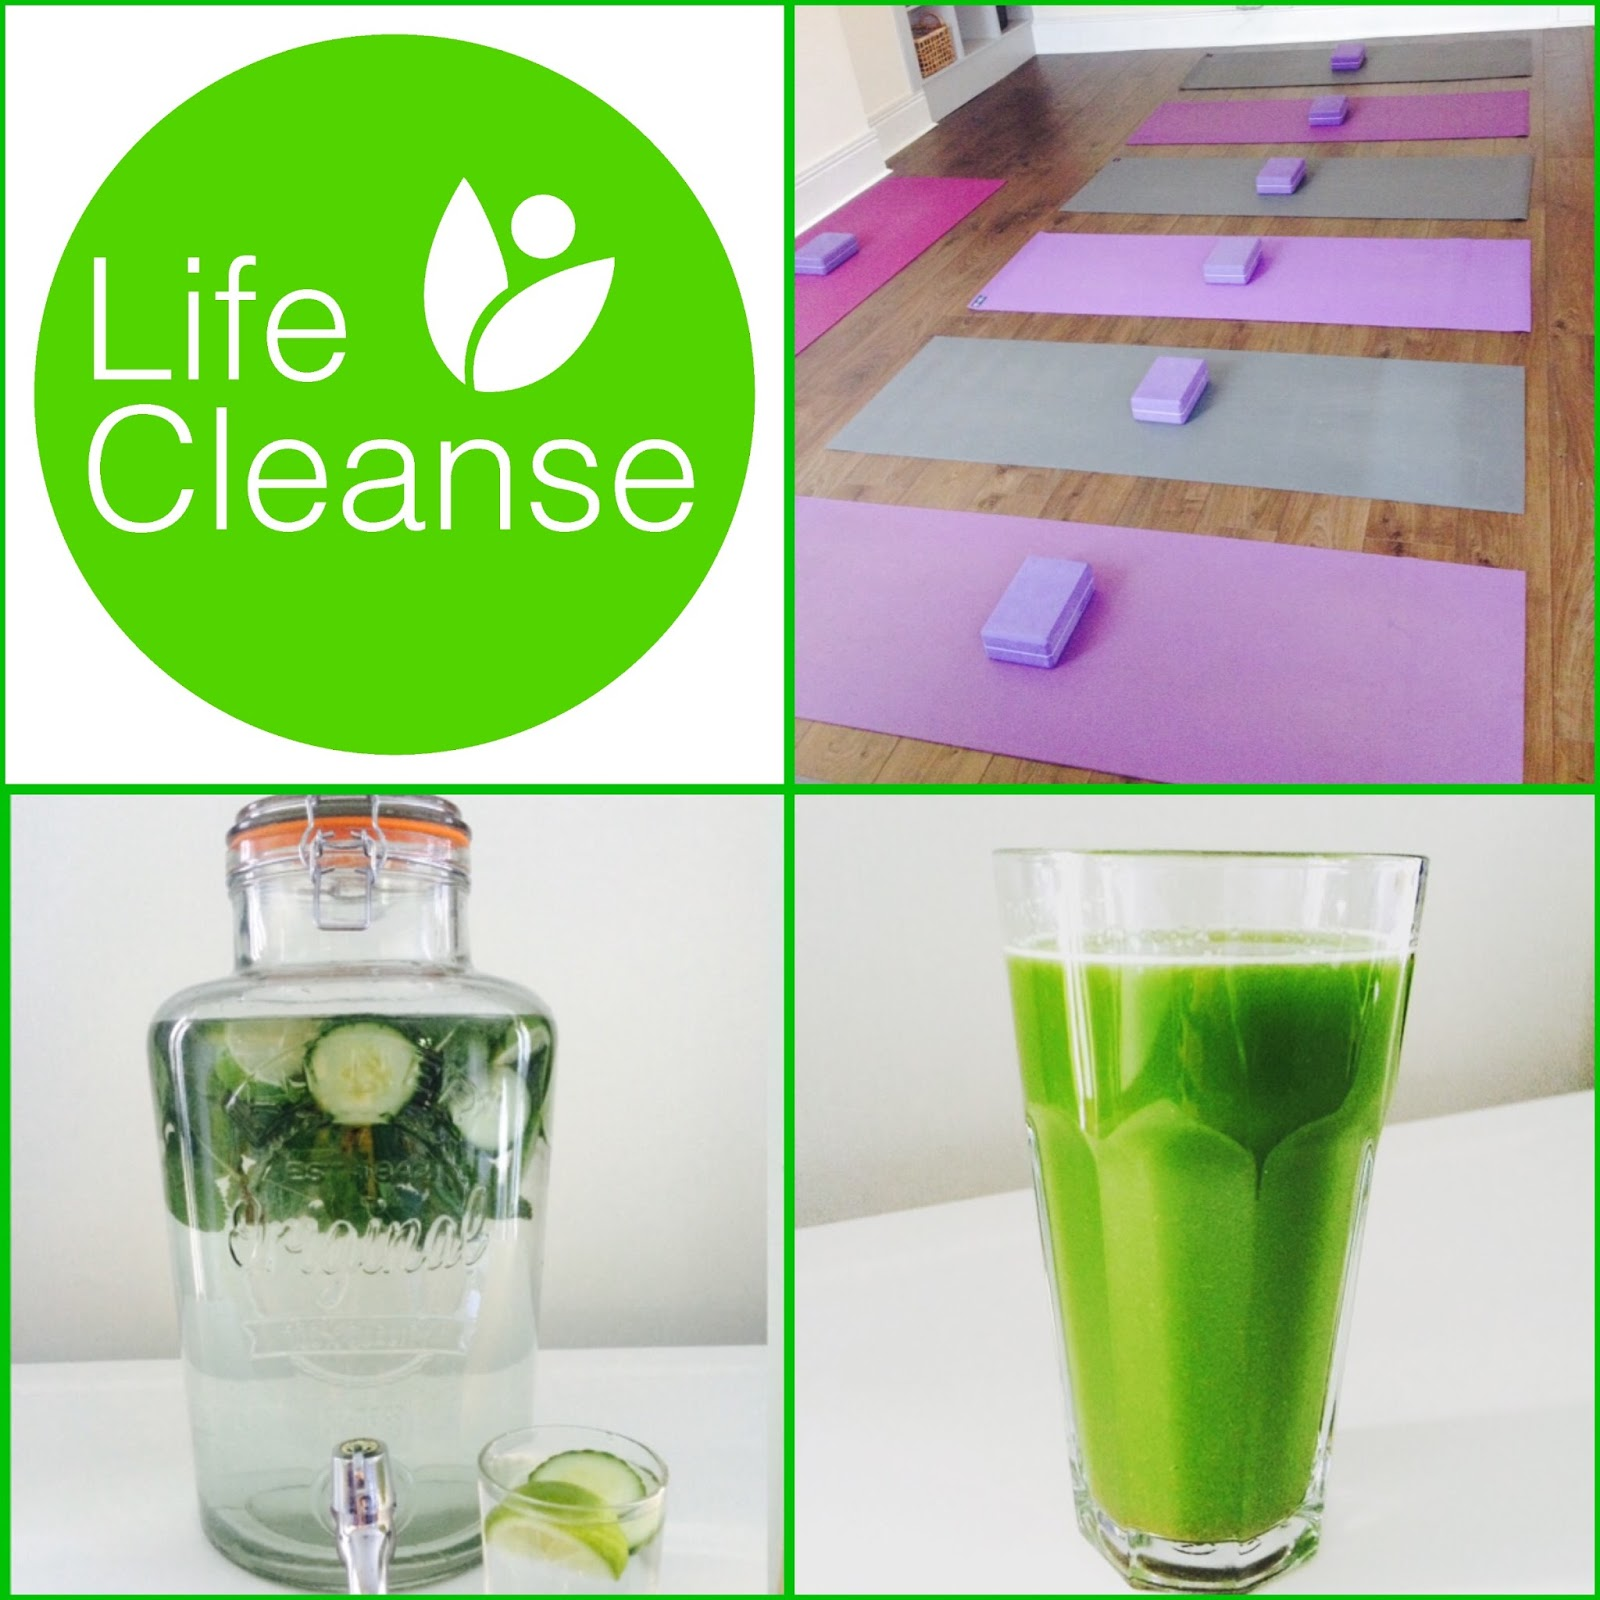 Life Cleanse Retreats